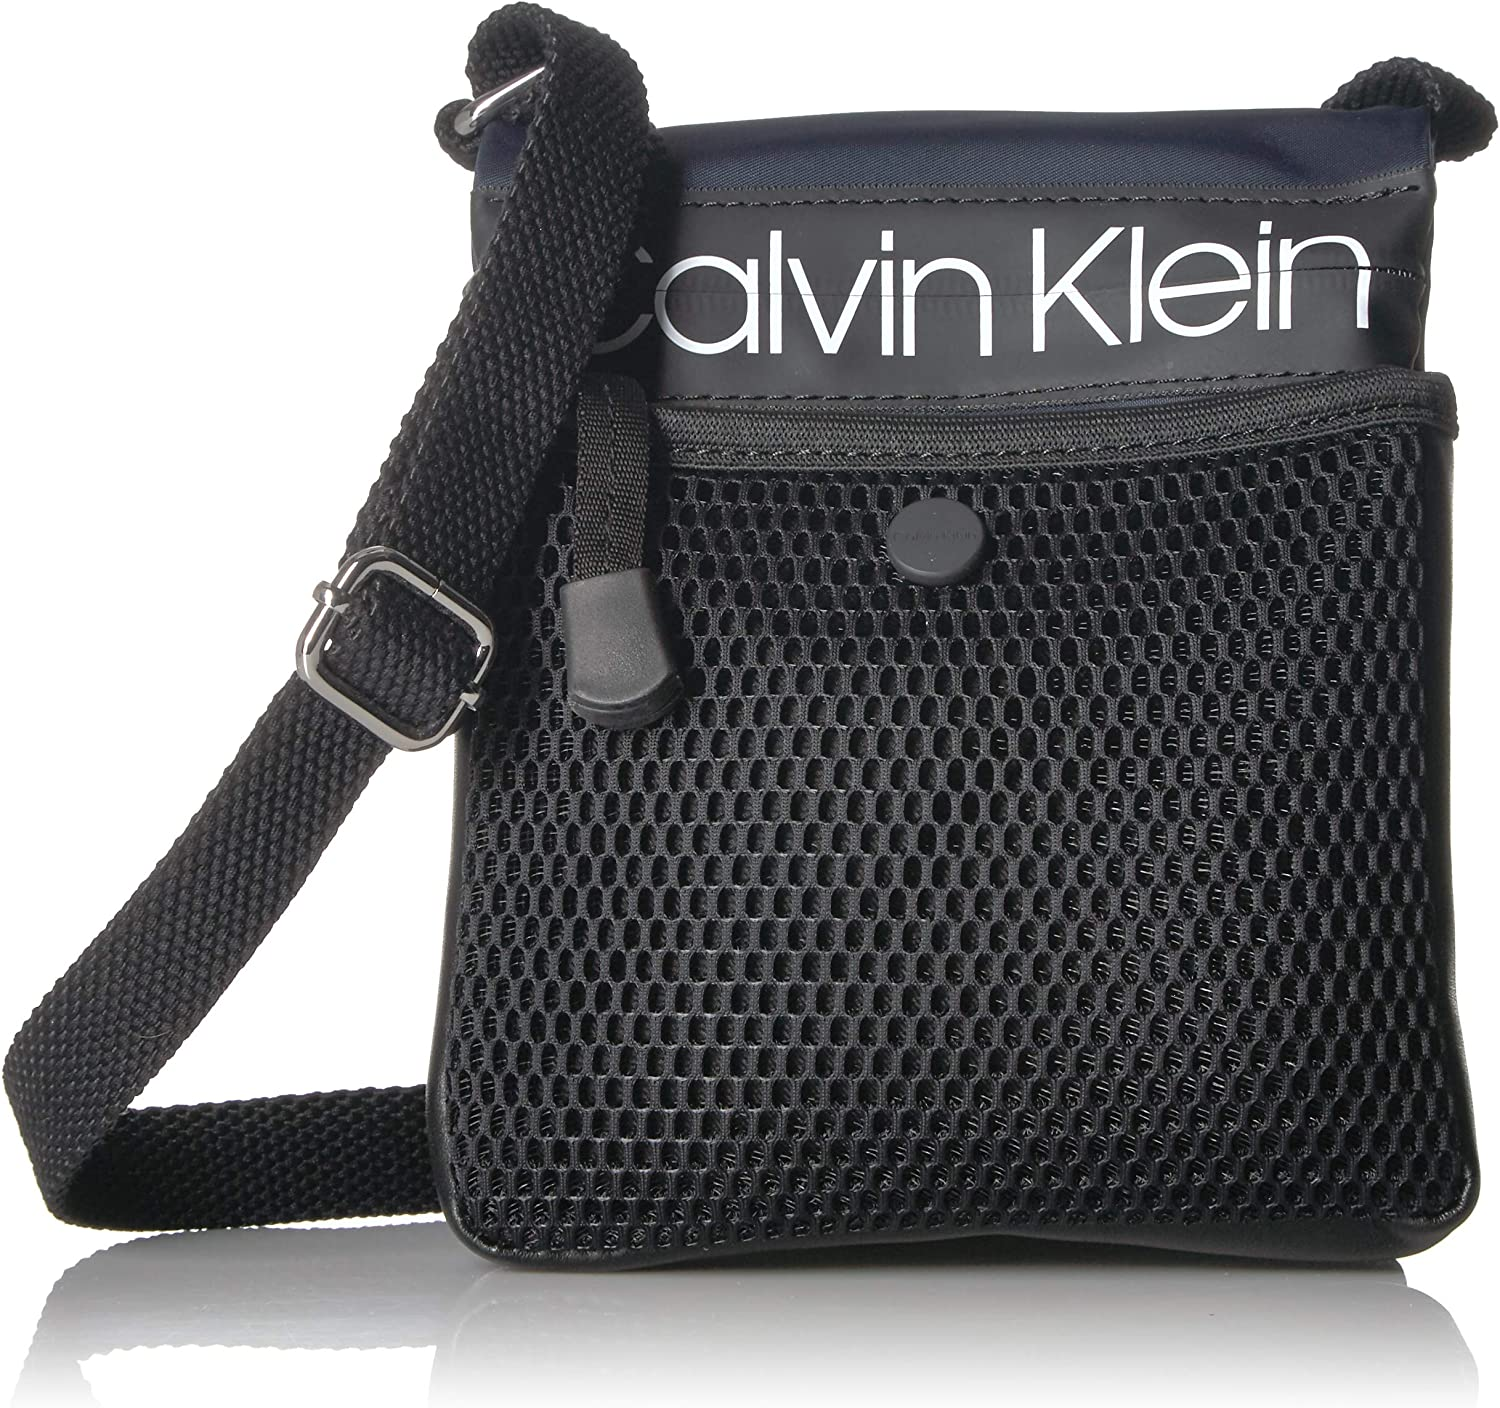 Calvin Klein Tabbie Nylon Multi-Pocket Organizational Crossbody